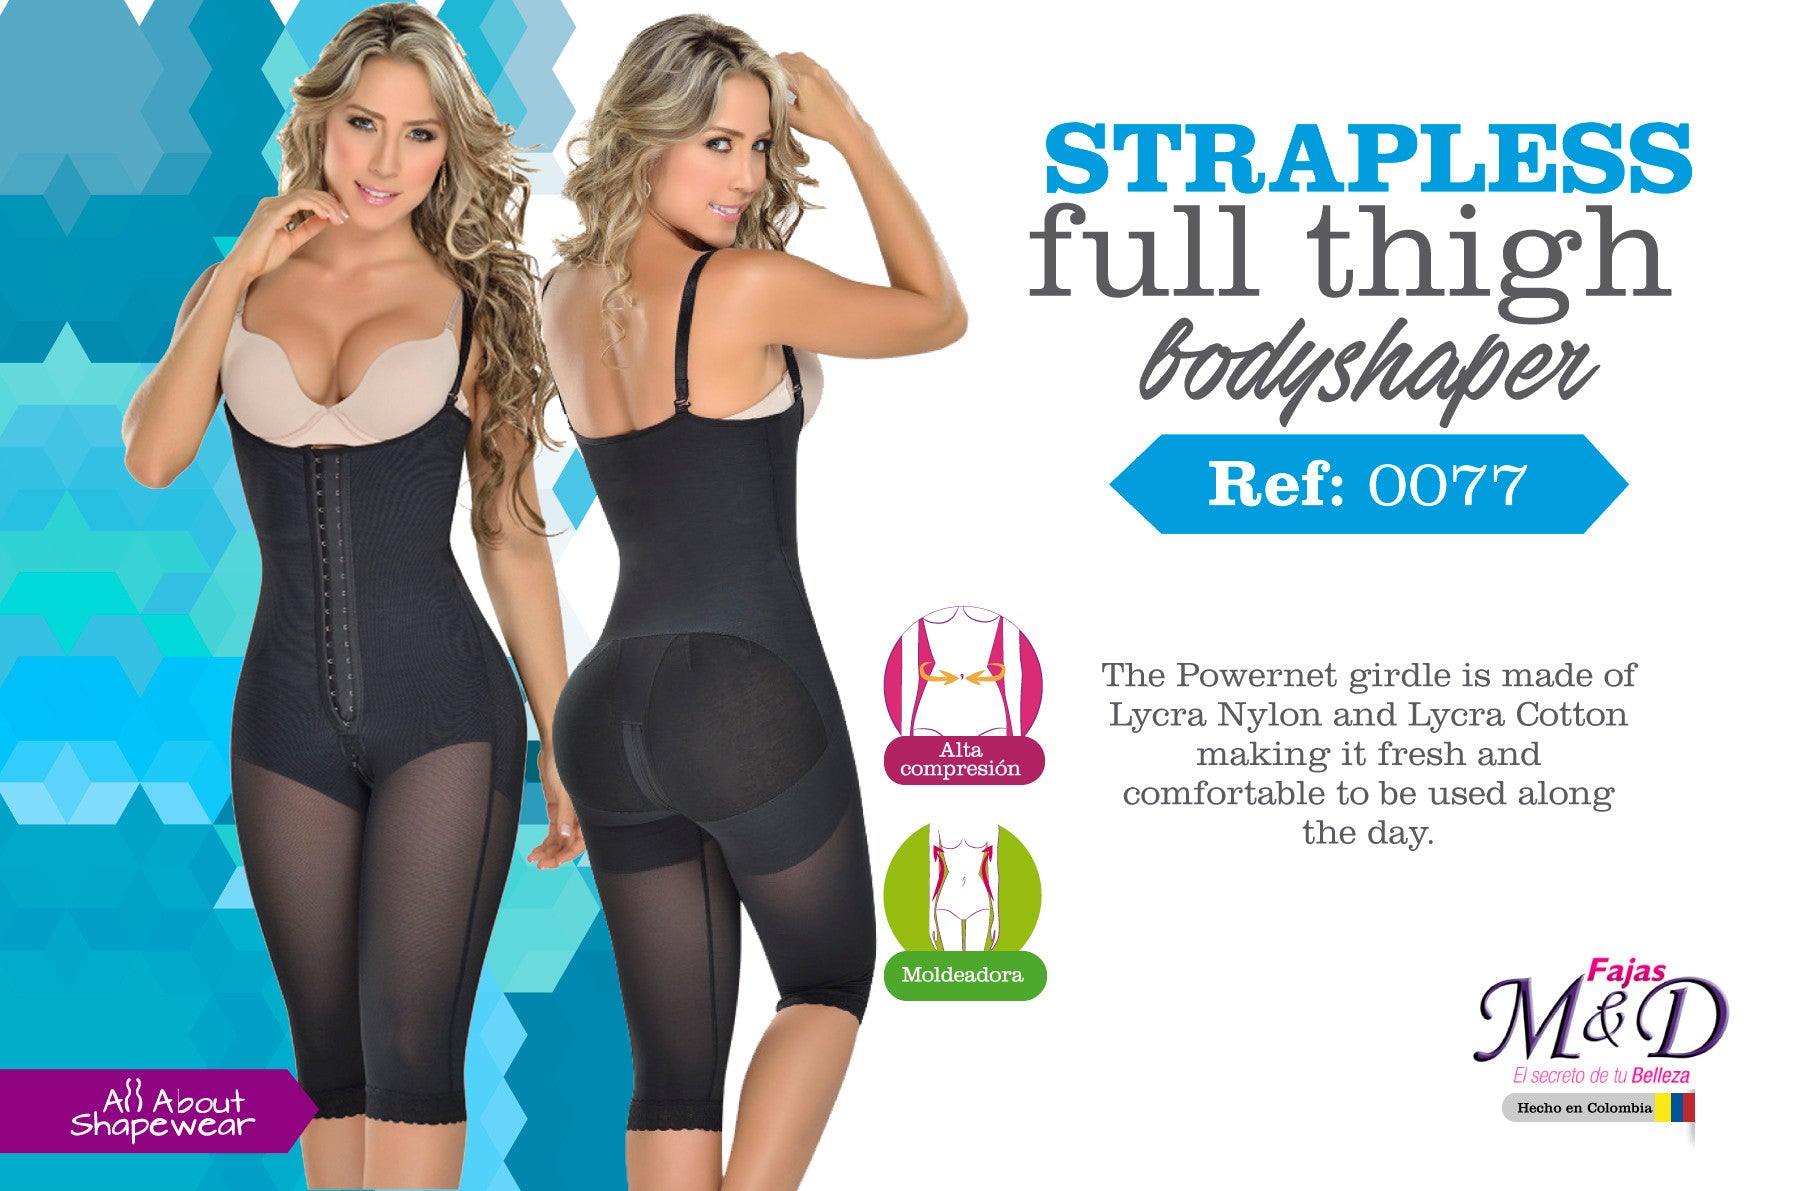 Strapless full thigh bodyshaper Ref: 0077